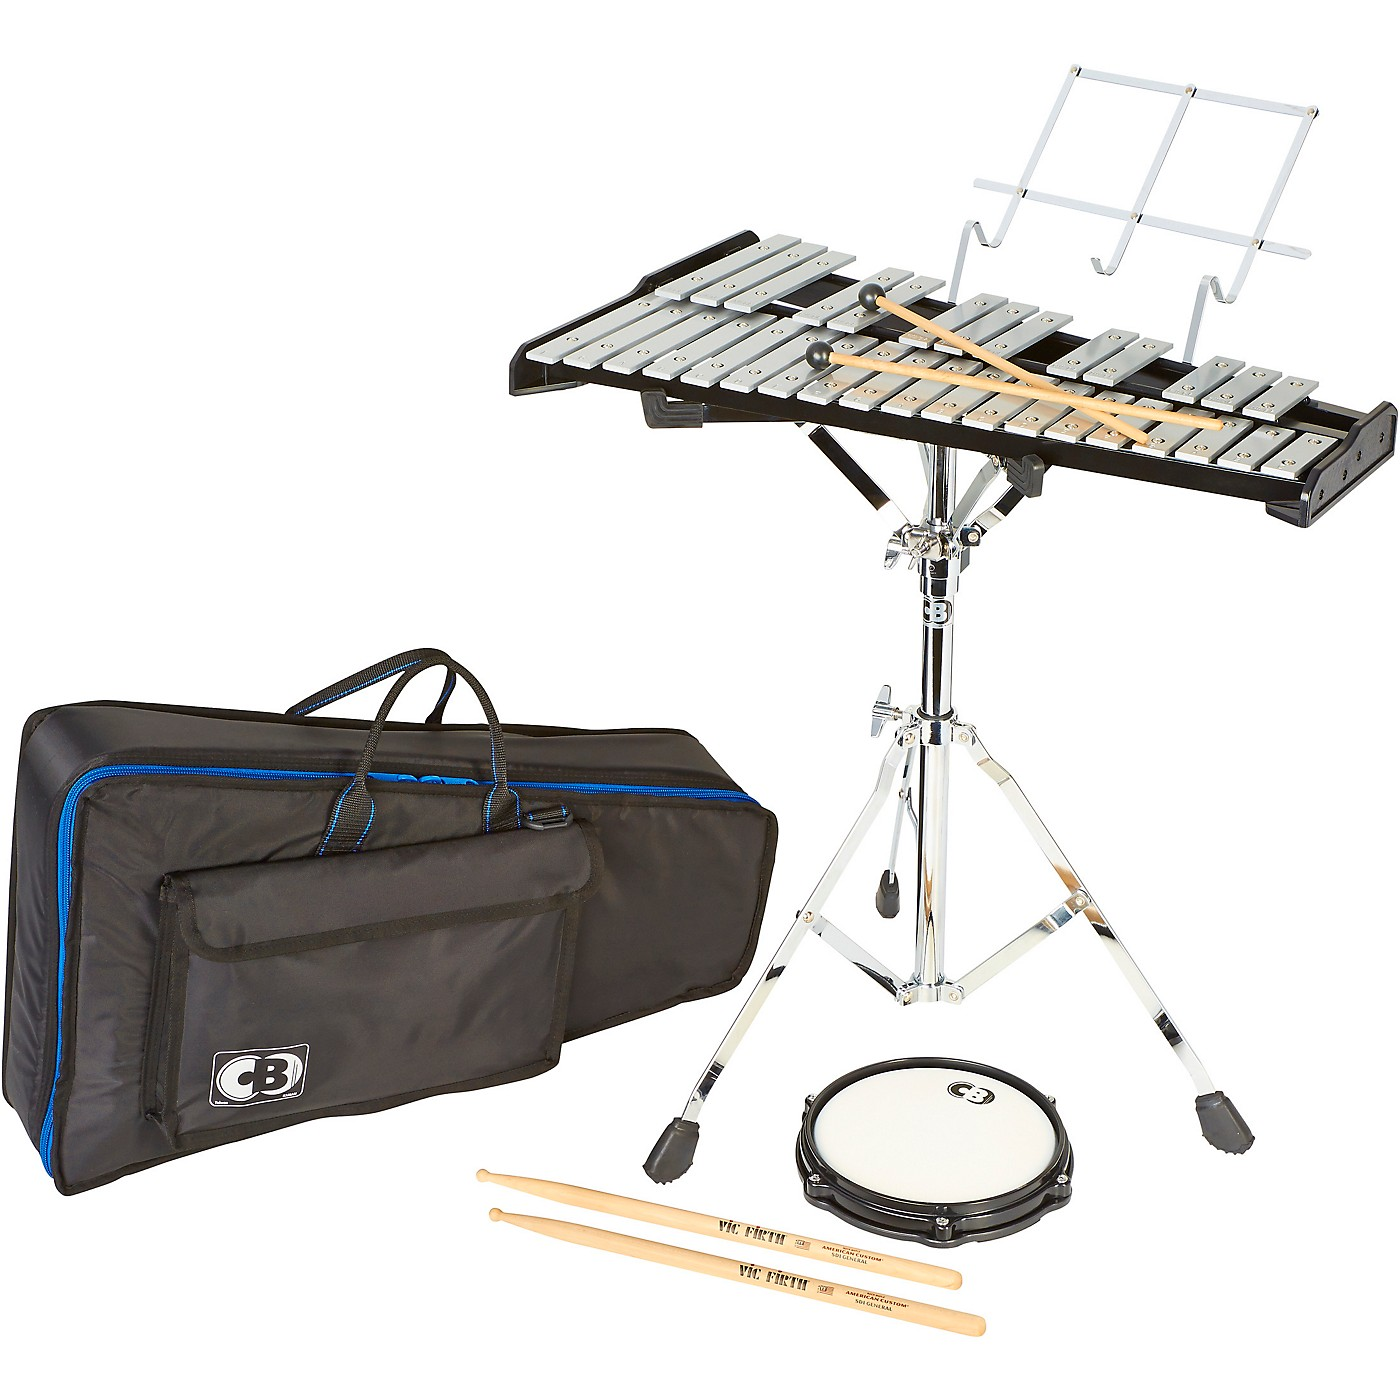 CB Percussion 8674 Percussion Kit with Bag thumbnail